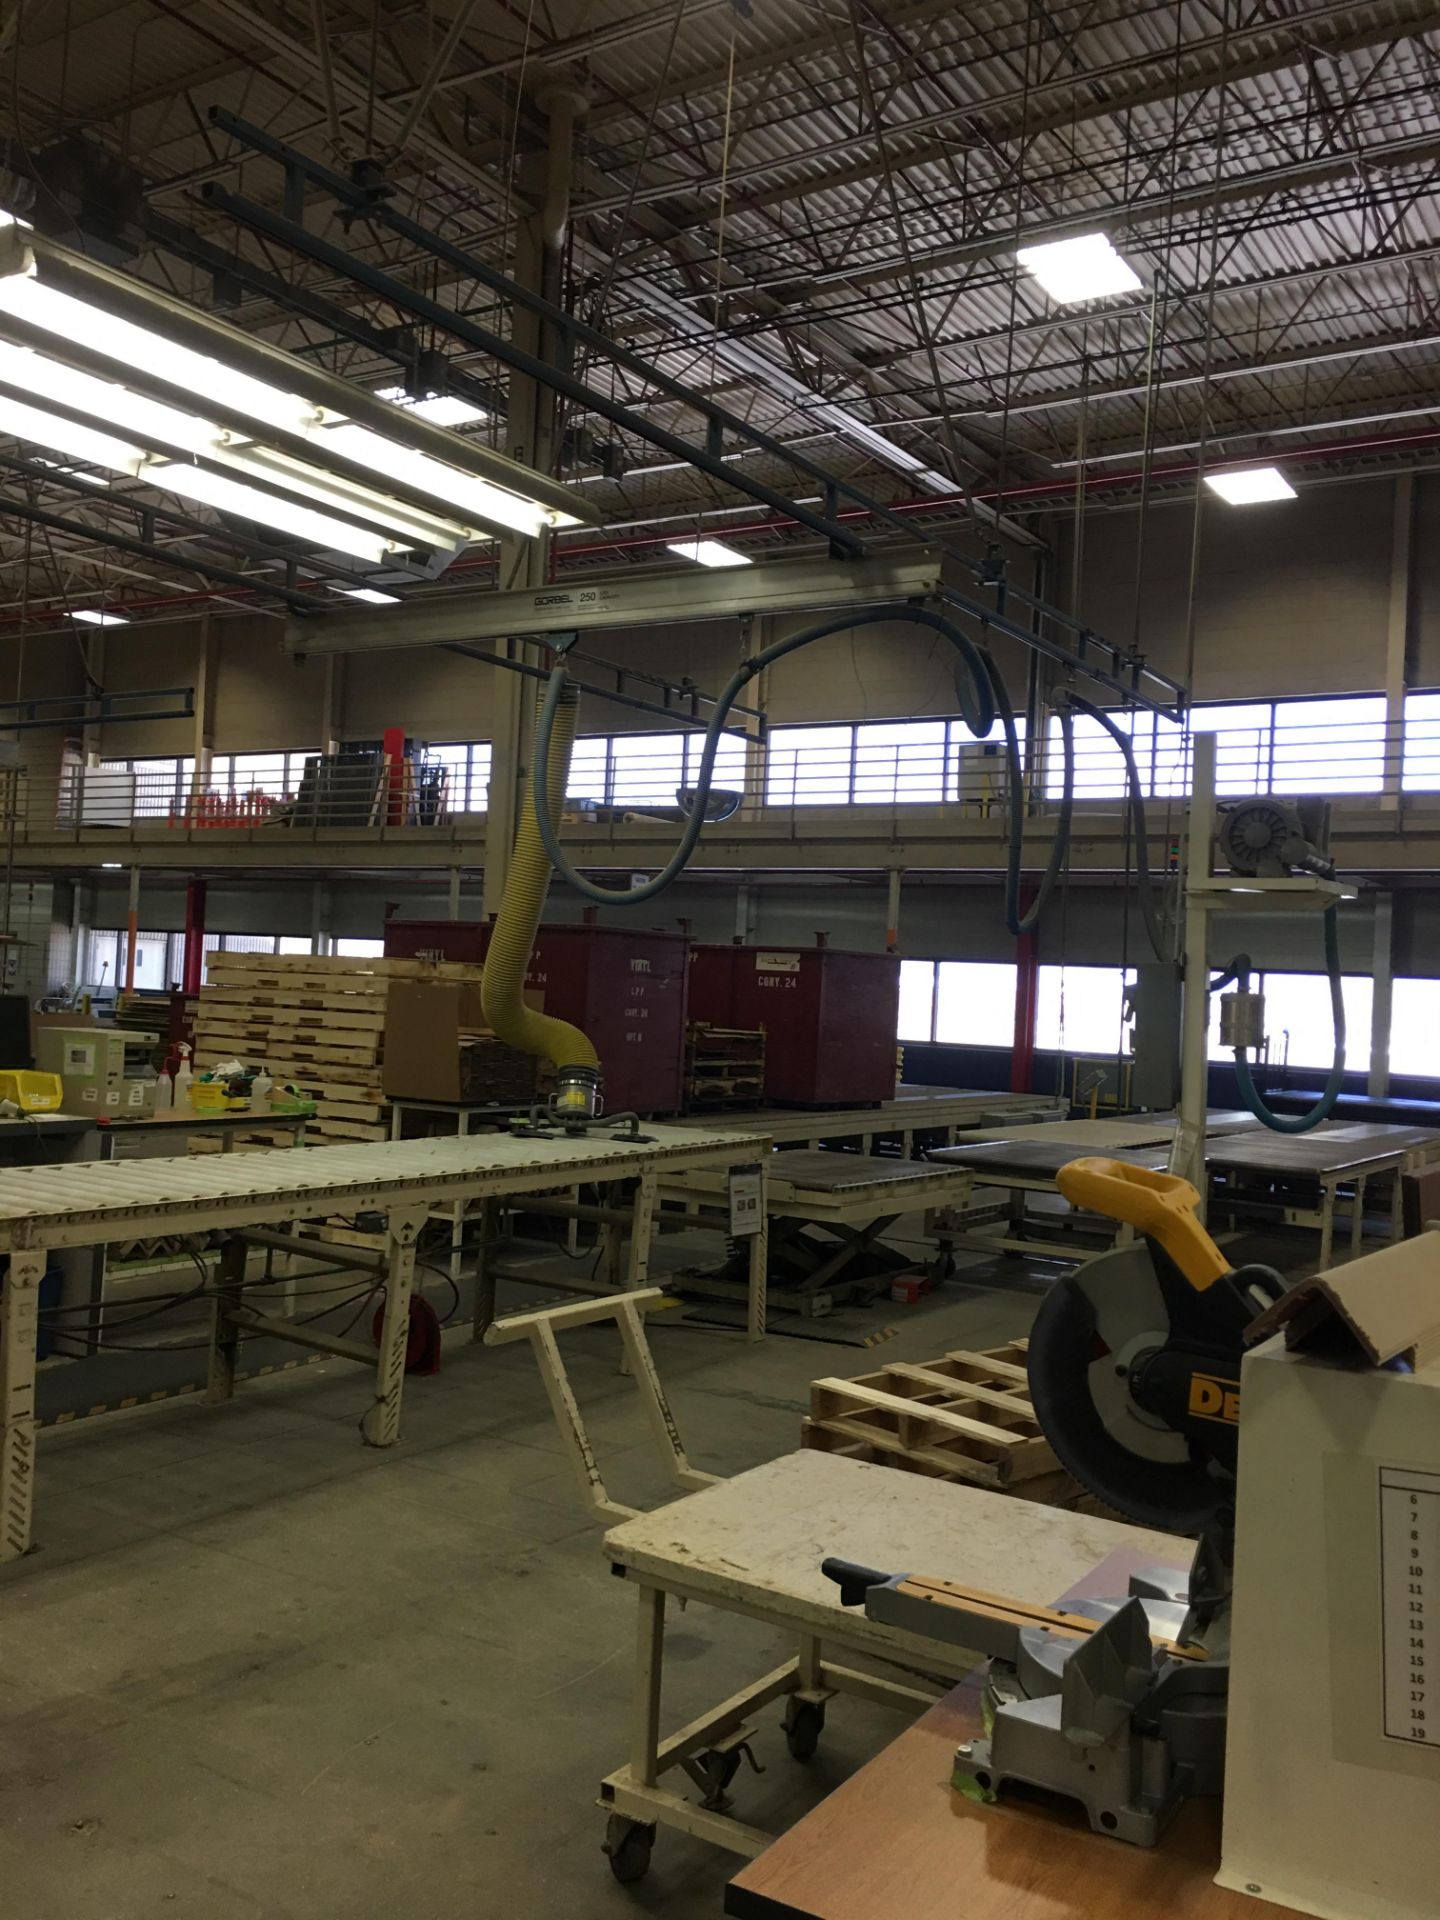 VACUUM LIFTER WITH PUMP AND OVERHEAD GANTRY RAILS - Image 3 of 3